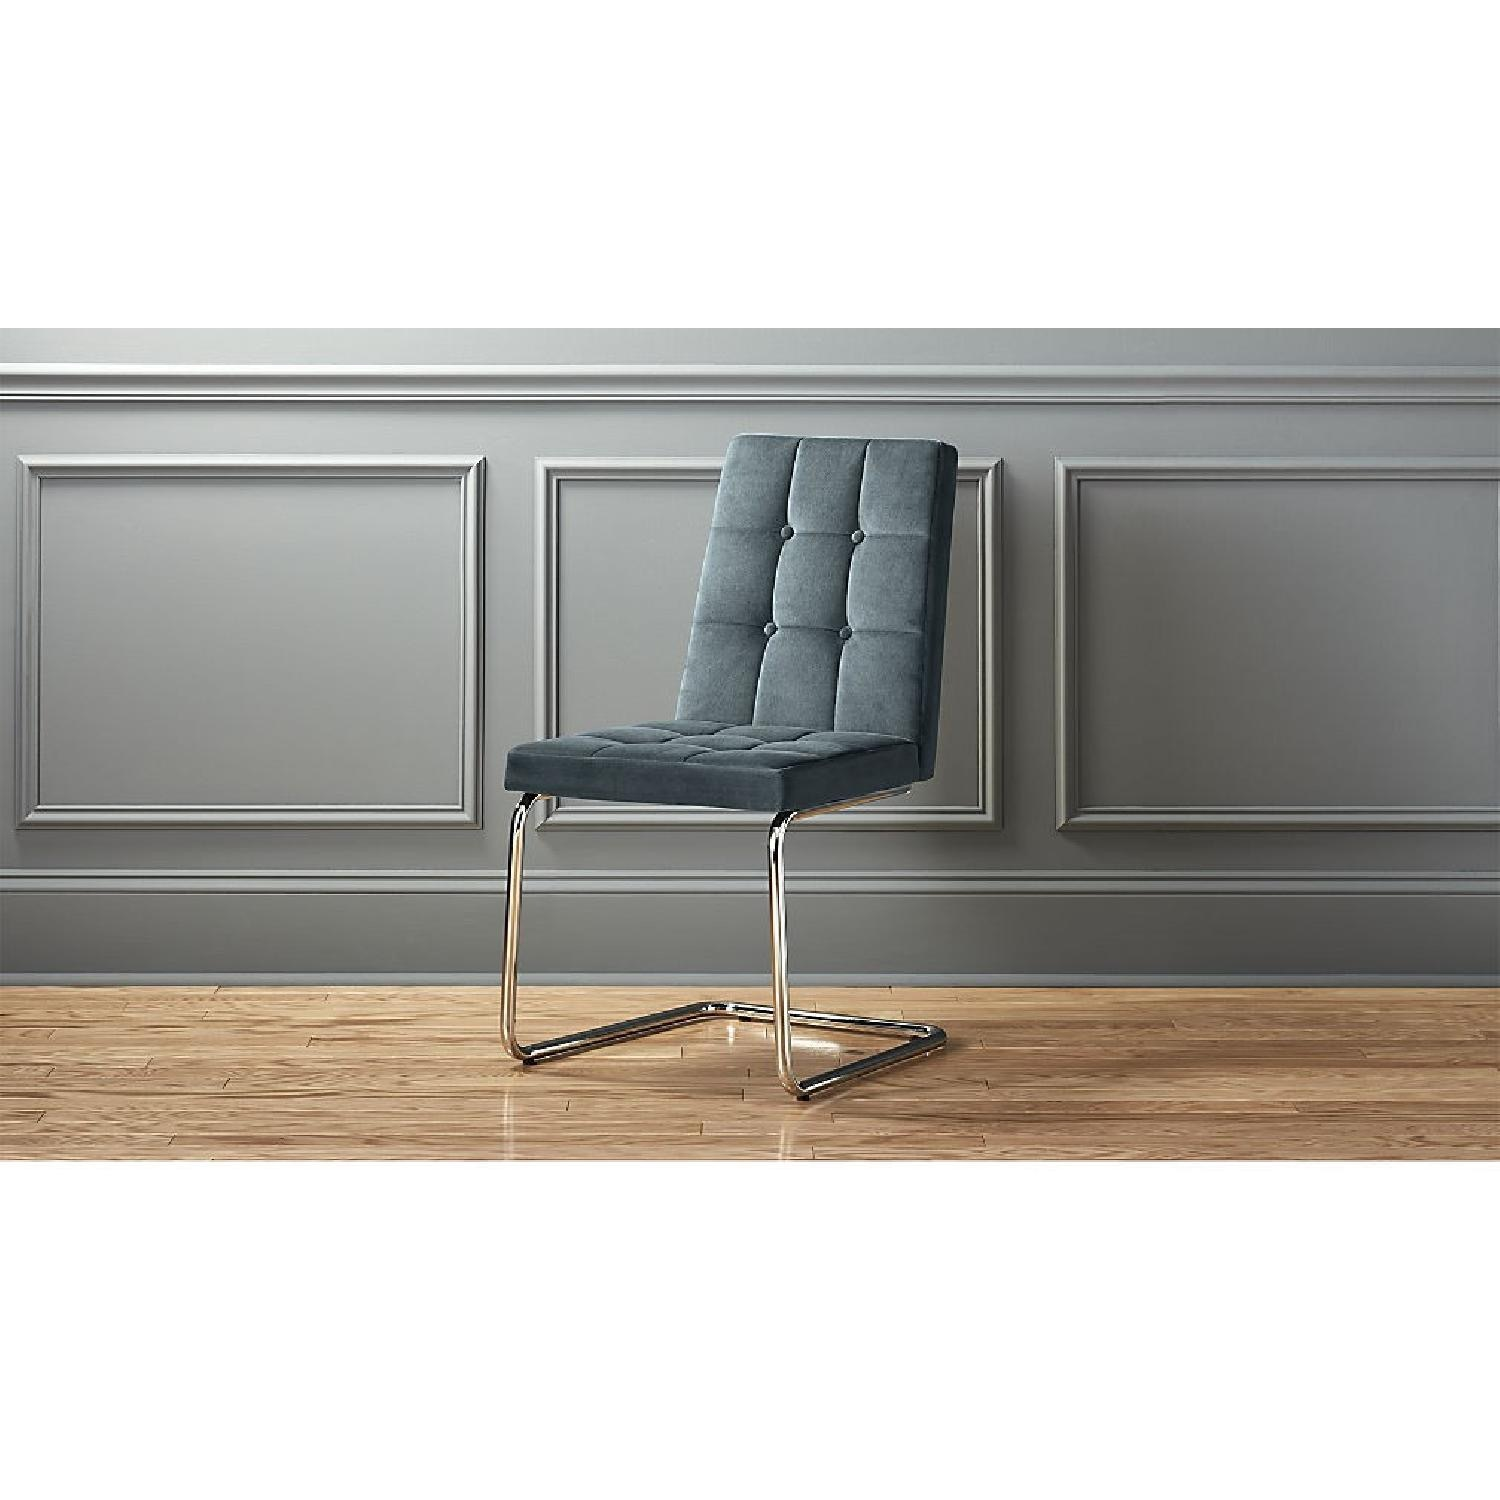 CB2 Roya Chair Slate Blue - image-1